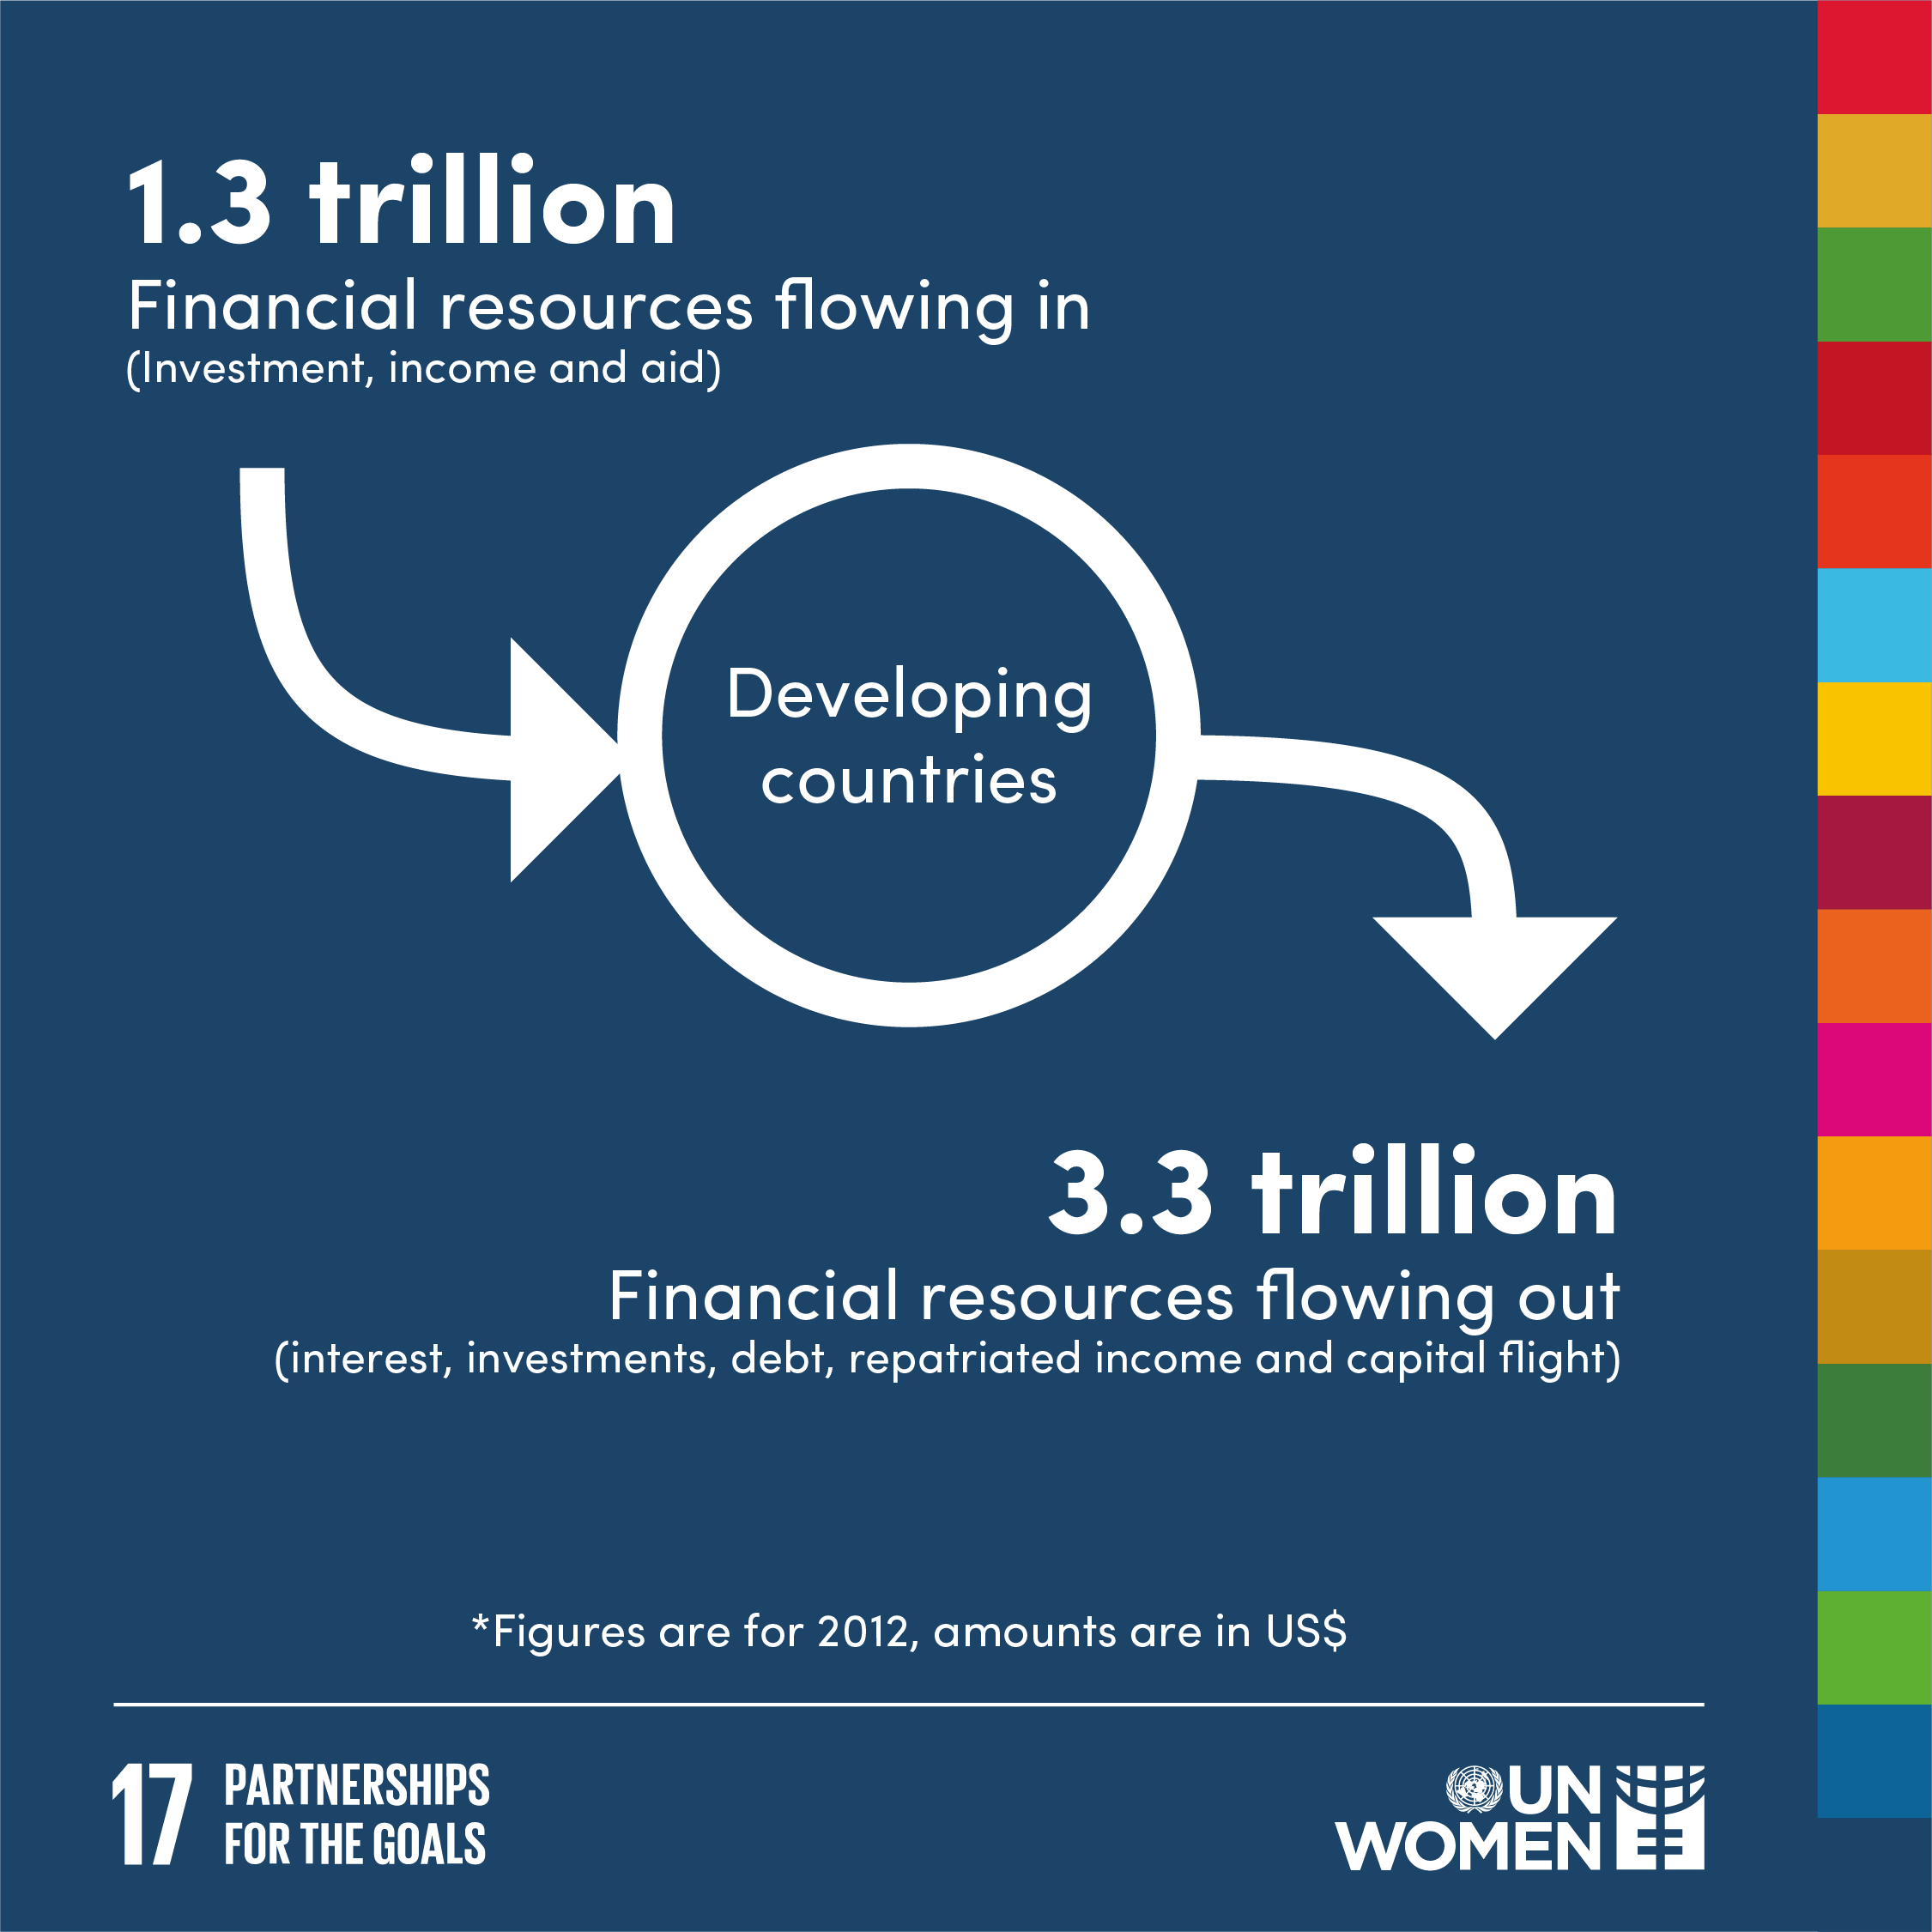 1.3  trillion financial resources flowing in to developing countries, and 3.3 trillion financial resources flowing out.